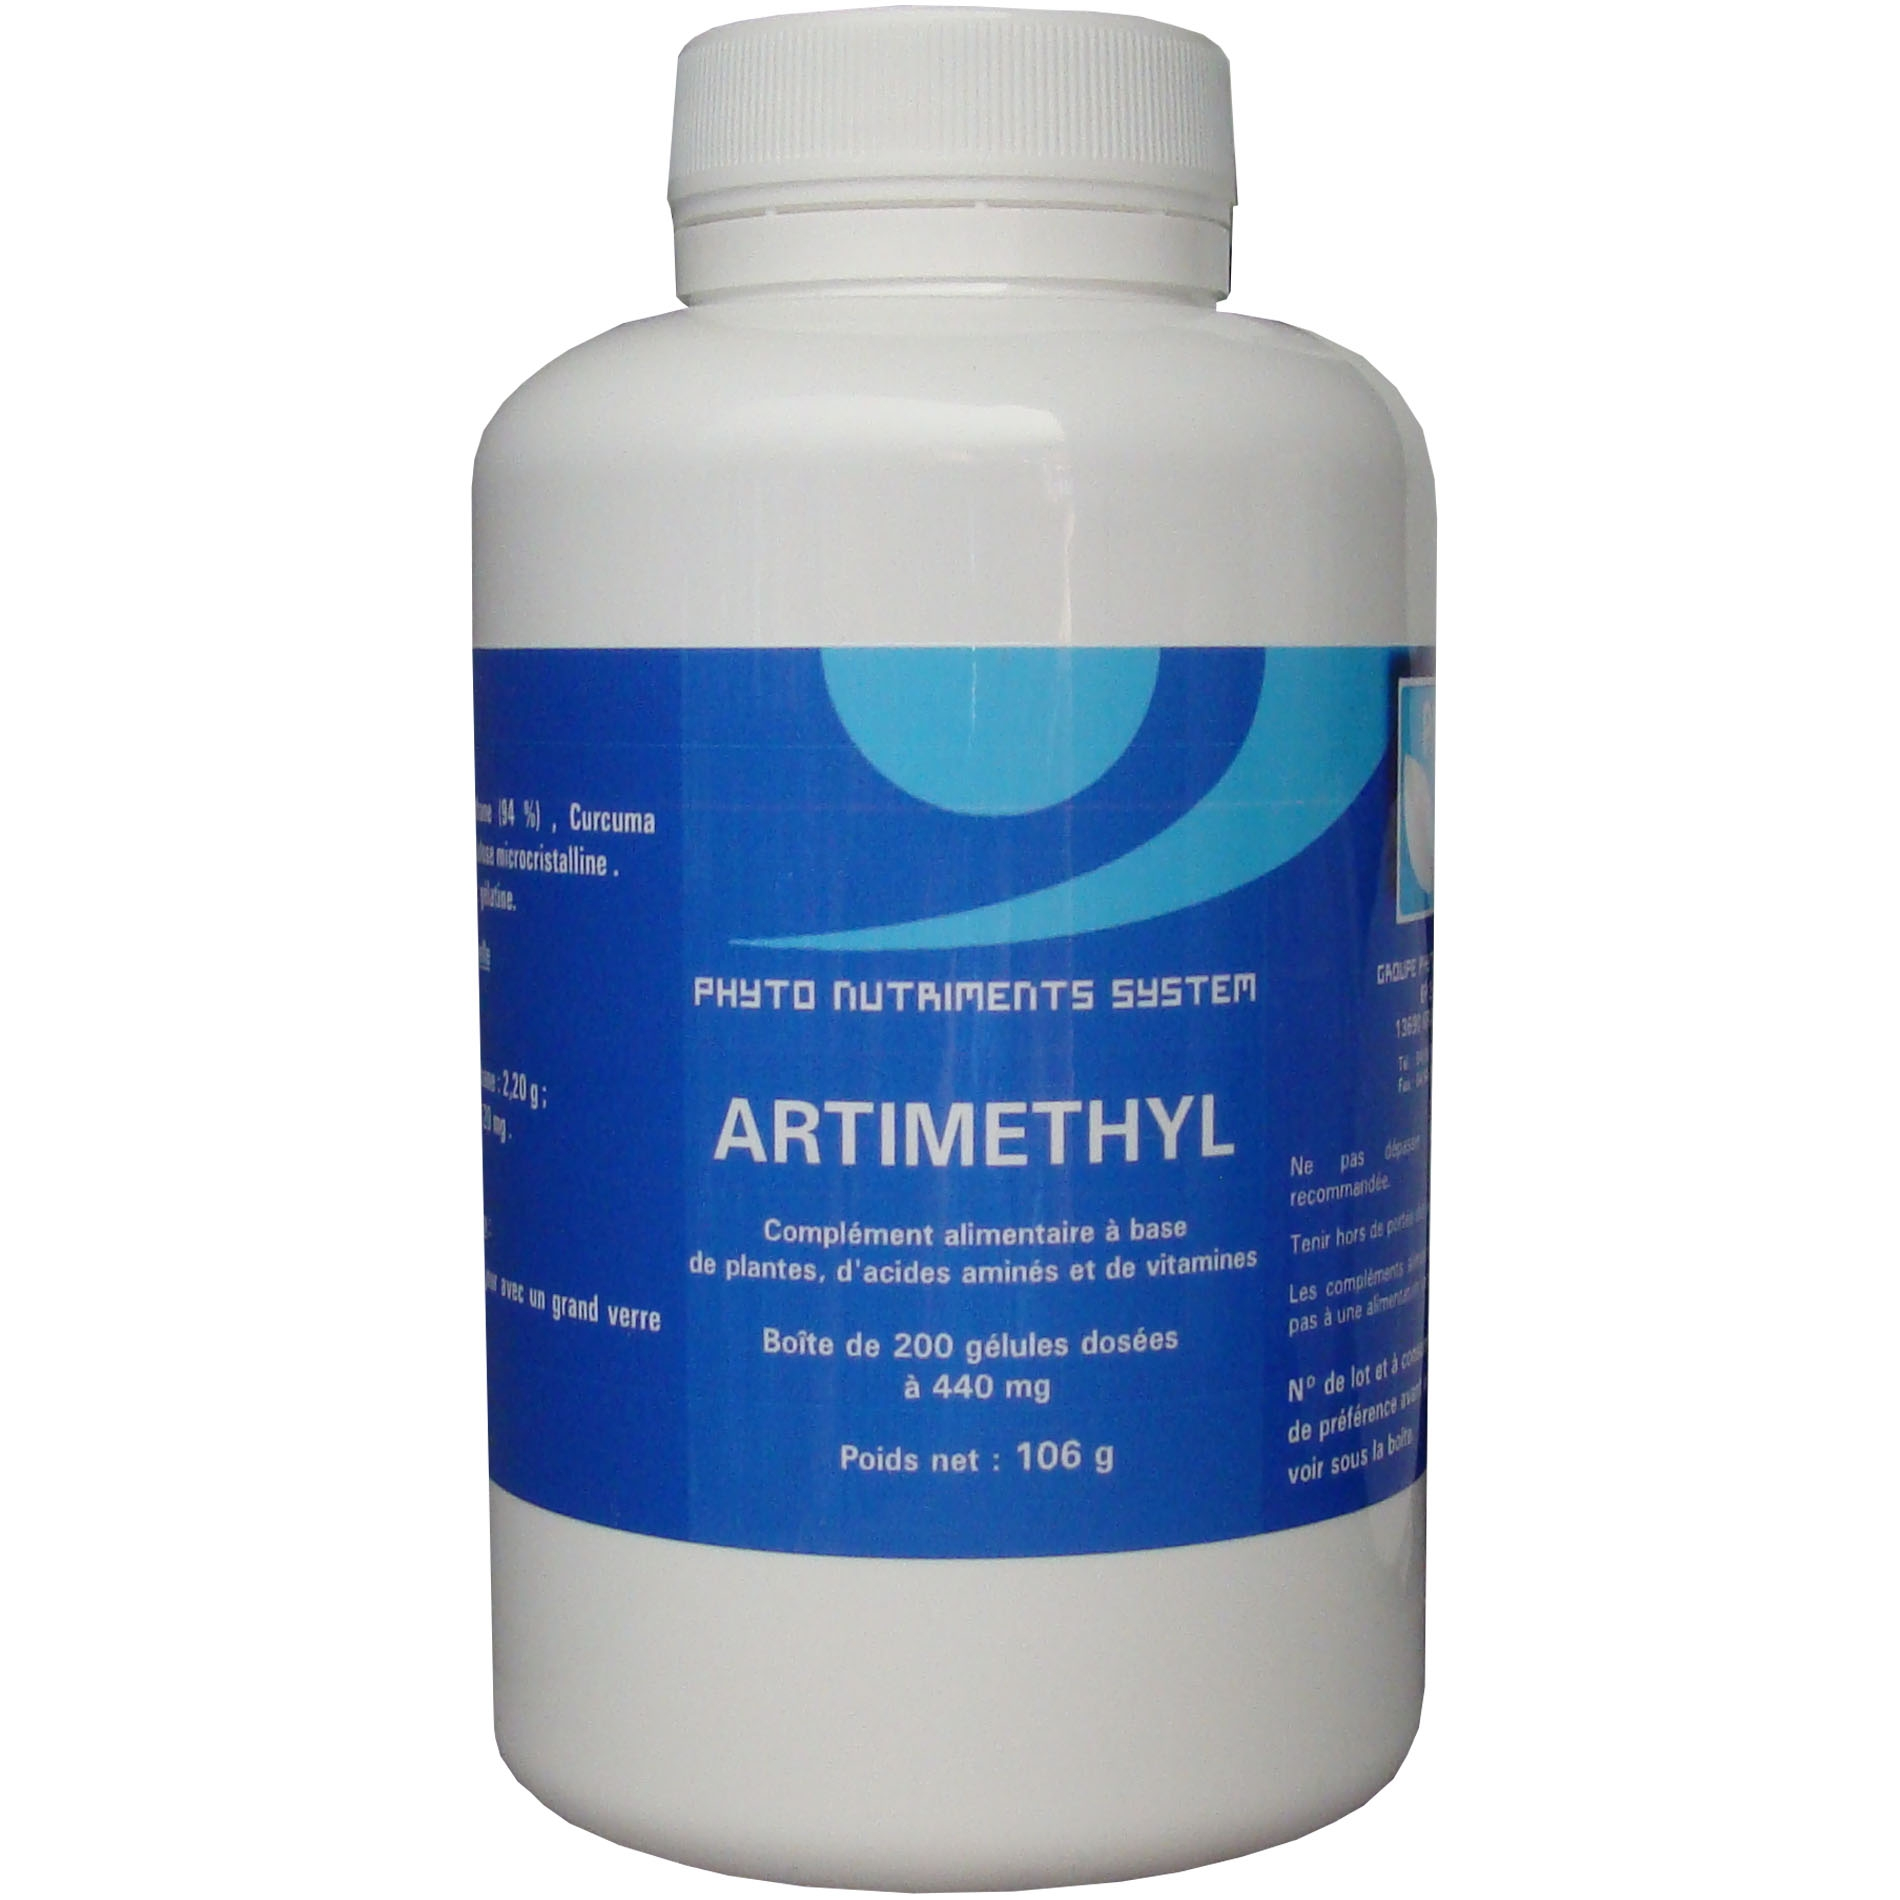 phytotherapie-complements-alimentaires-artimethyl